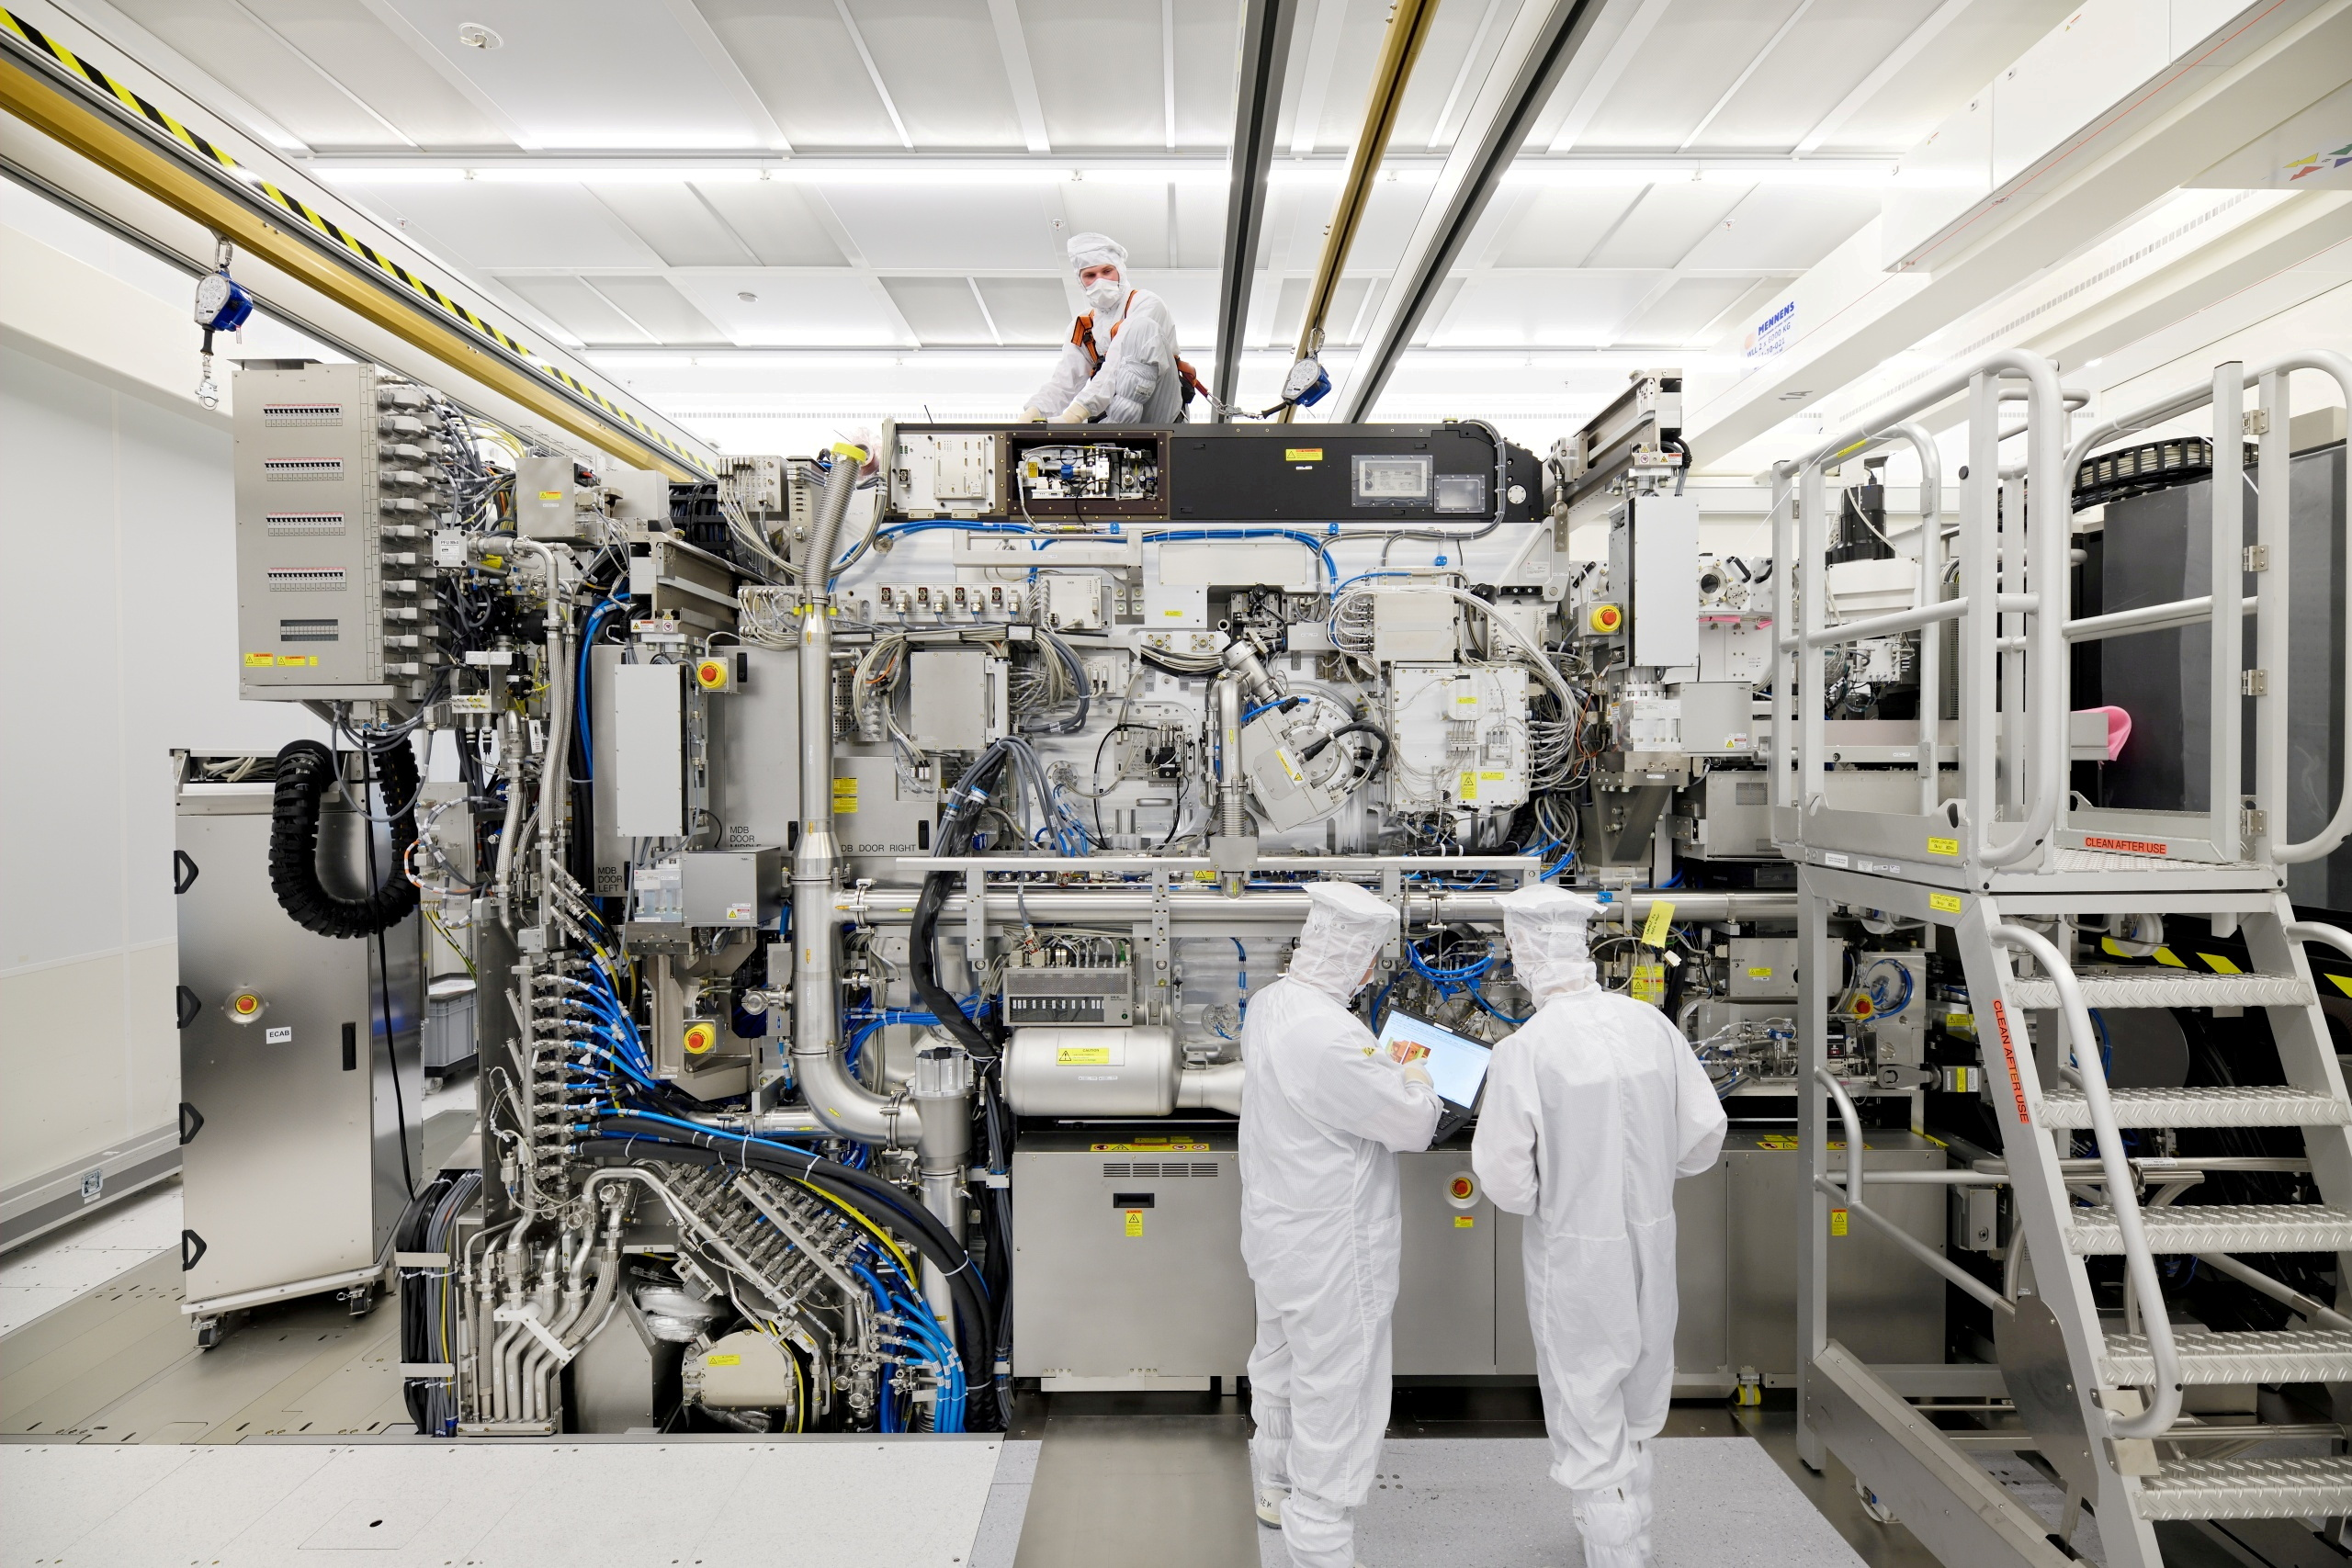 Employees are seen working on the final assembly of ASML's TWINSCAN NXE:3400B semiconductor lithography tool with its panels removed, in Veldhoven, Netherlands, in this picture taken April 4, 2019. Bart van Overbeeke Fotografie/ASML/Handout via REUTERS